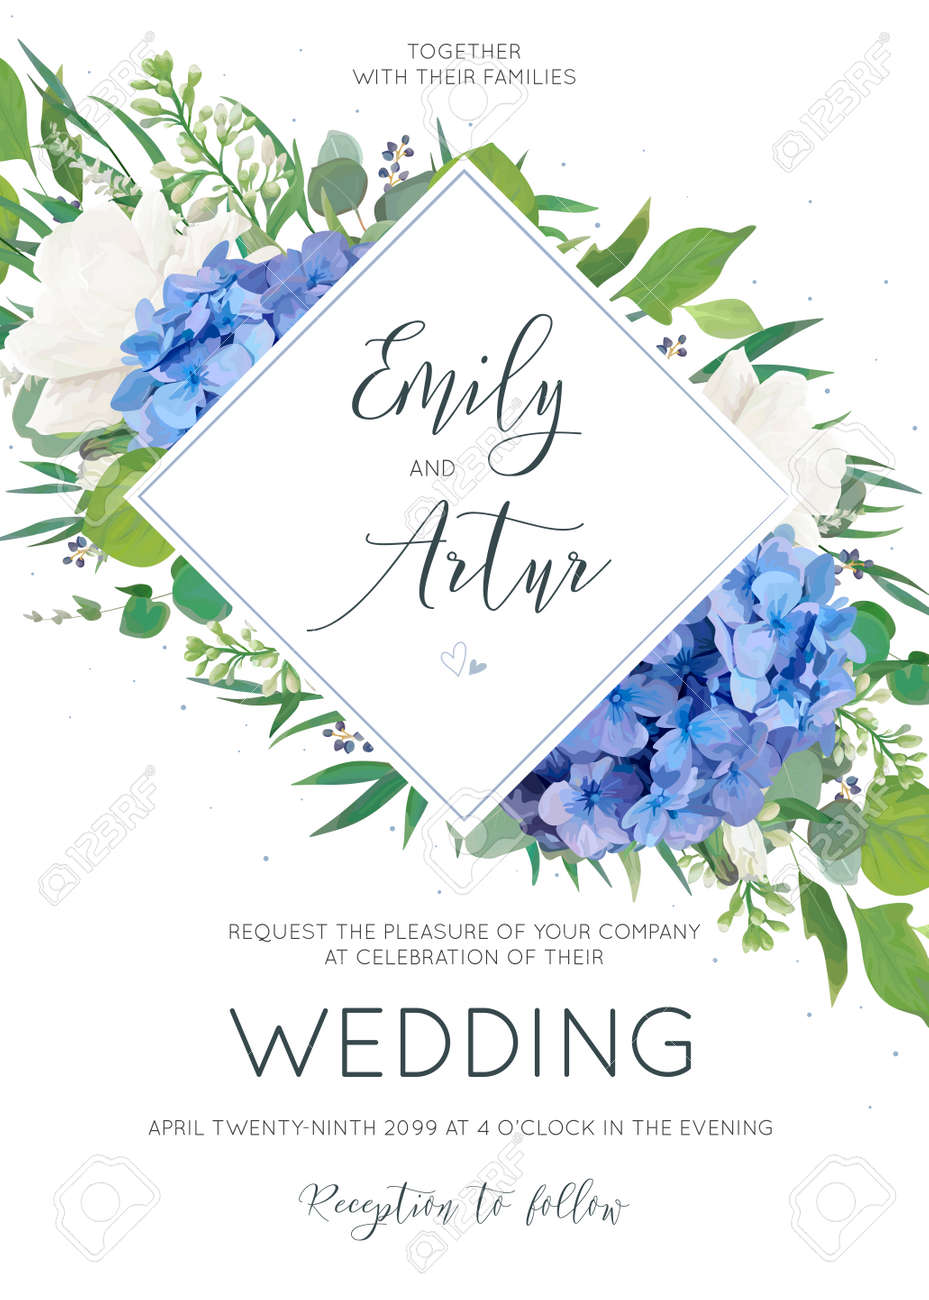 Elegant wedding invitation with watercolor art style floral designs. - 97101376